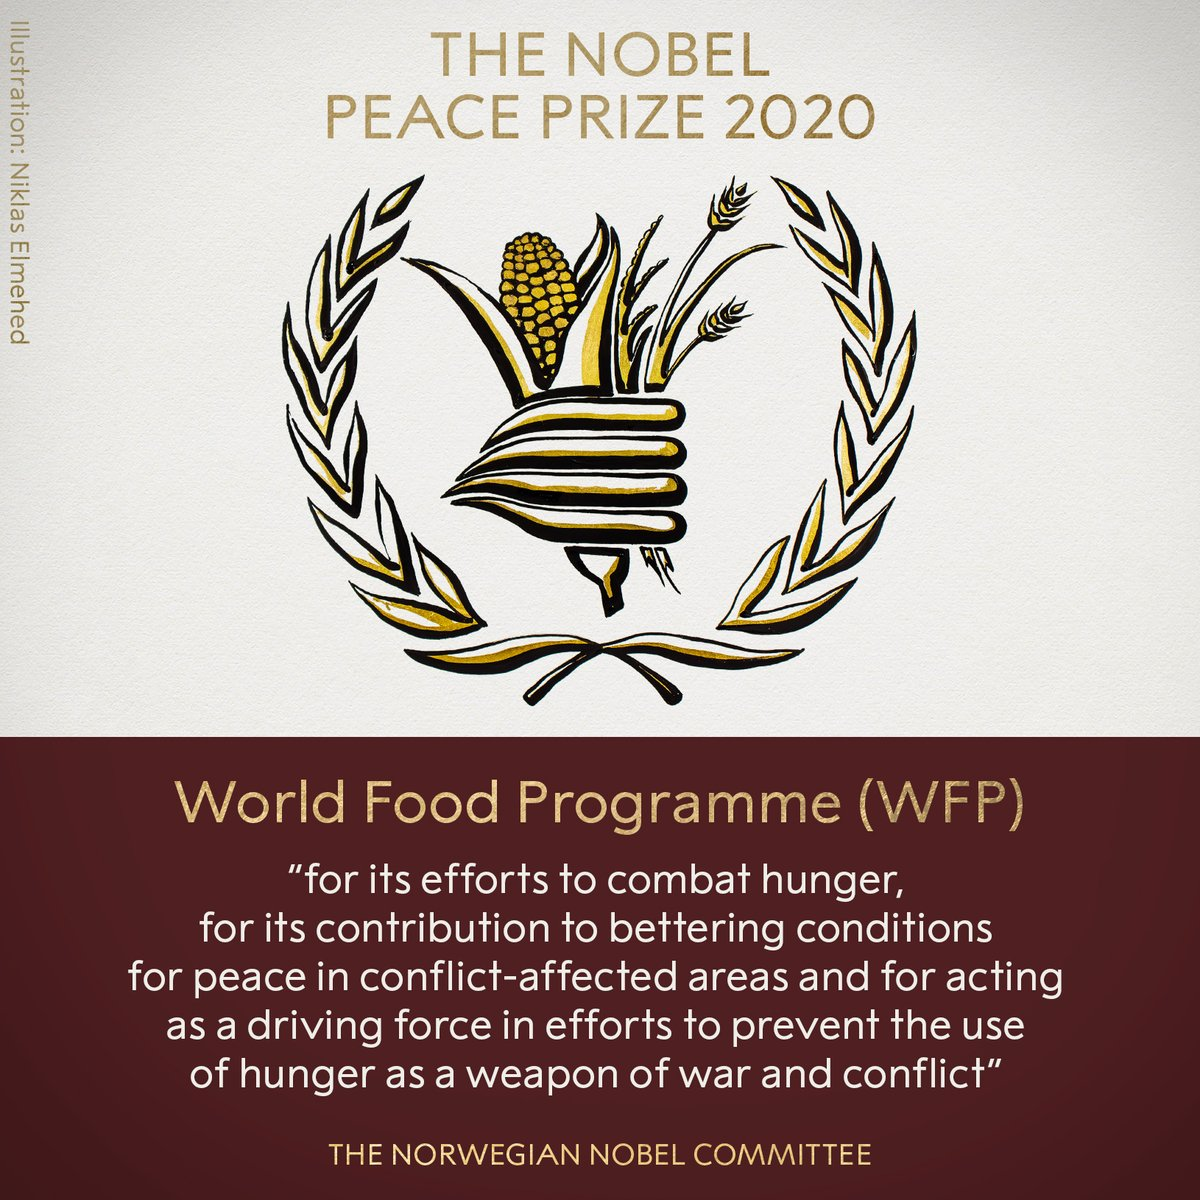 BREAKING NEWS:  The Norwegian Nobel Committee has decided to award the 2020 Nobel Peace Prize to the World Food Programme (WFP).  #NobelPrize #NobelPeacePrize